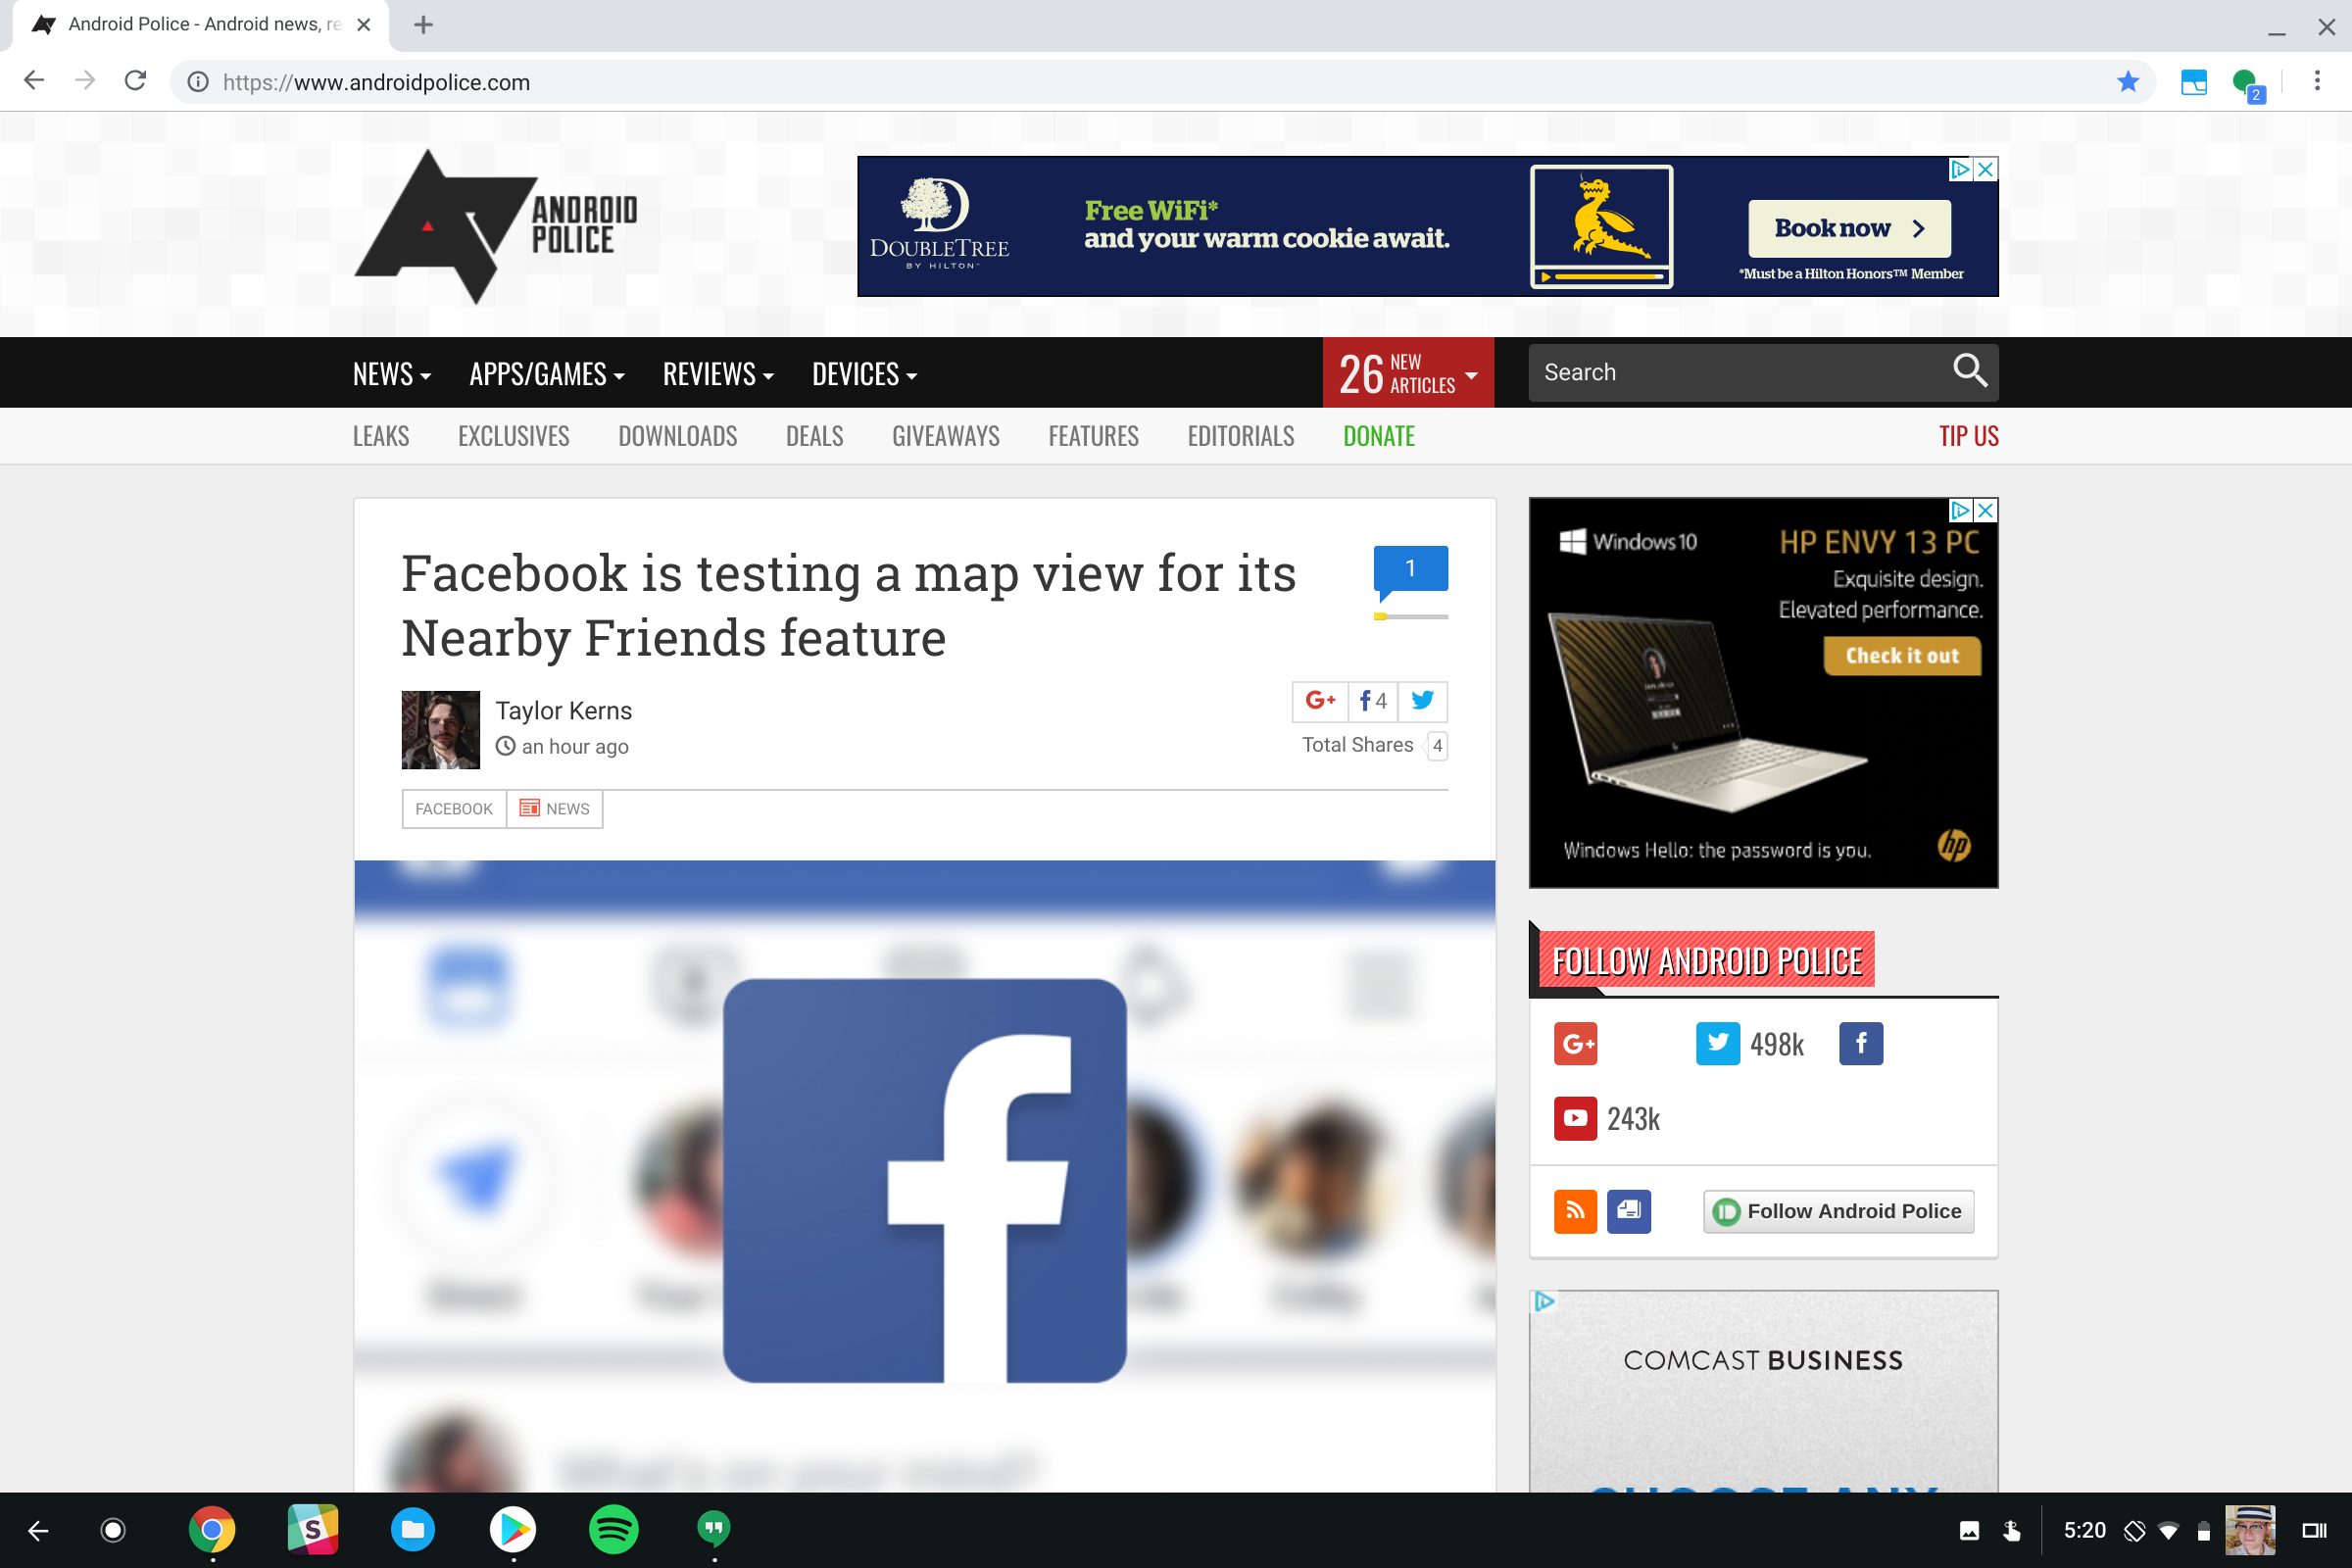 Chrome OS Canary build now hides top browser UI when